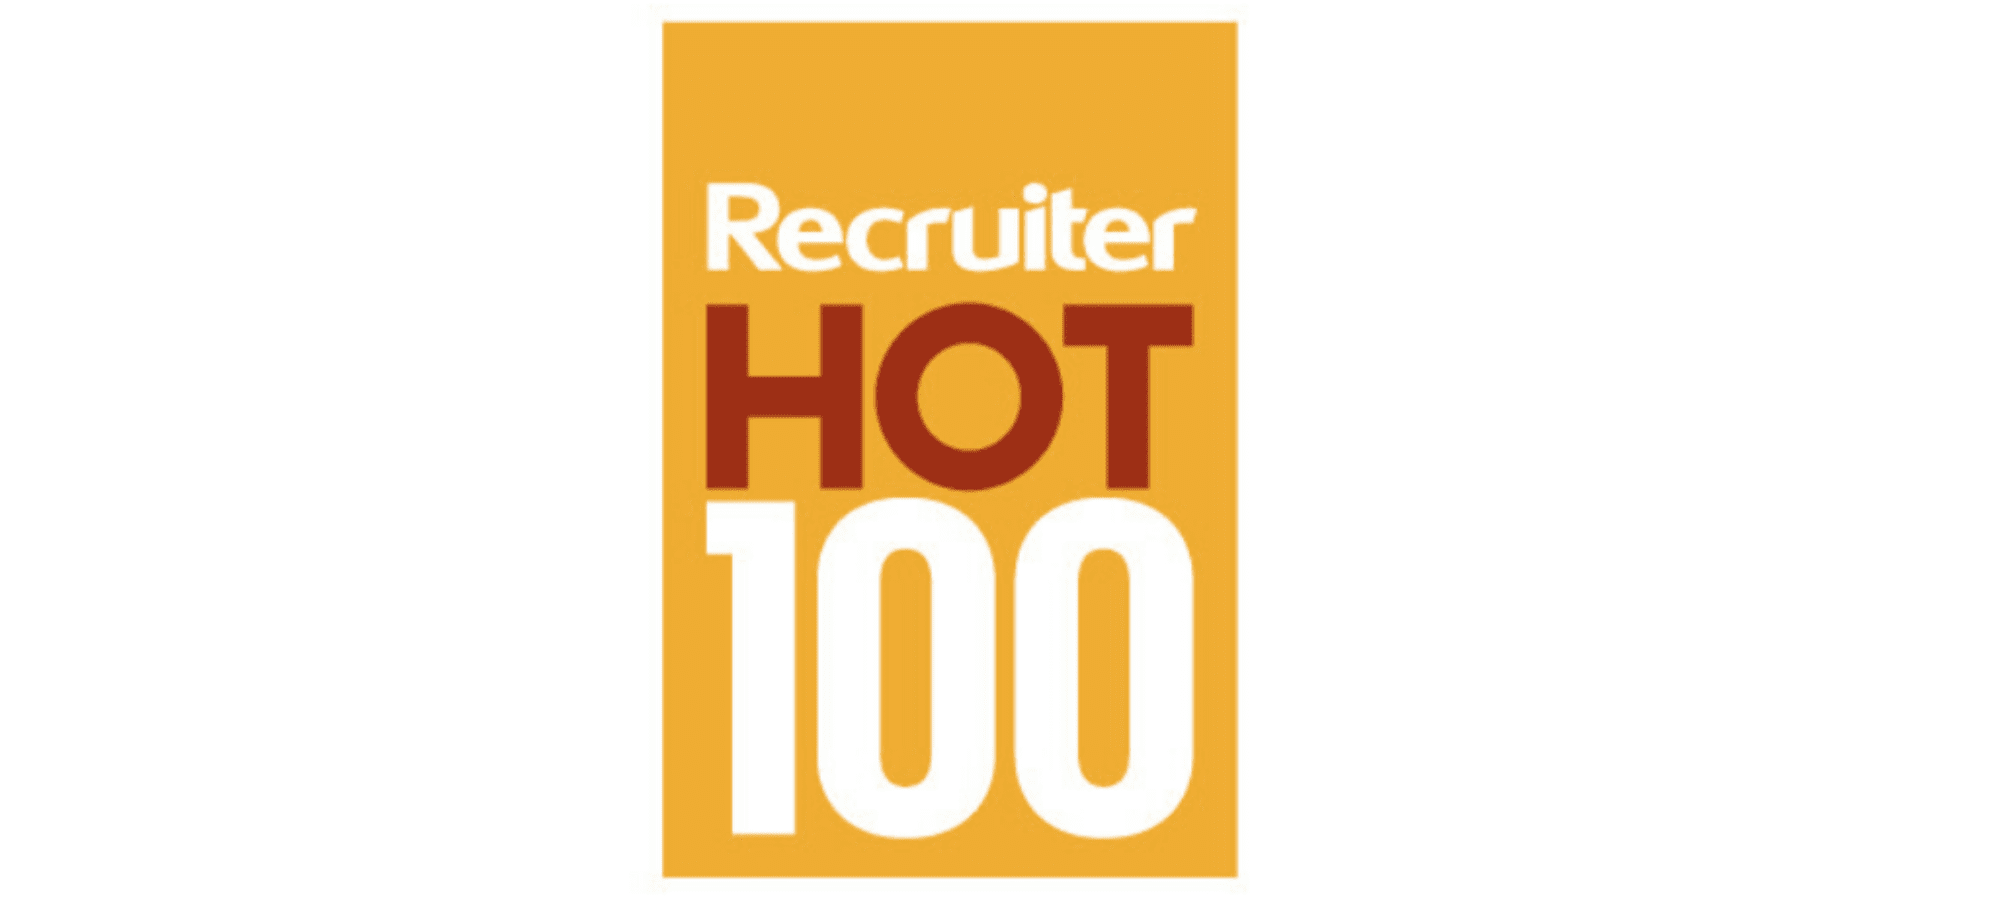 Recruiters HOT 100